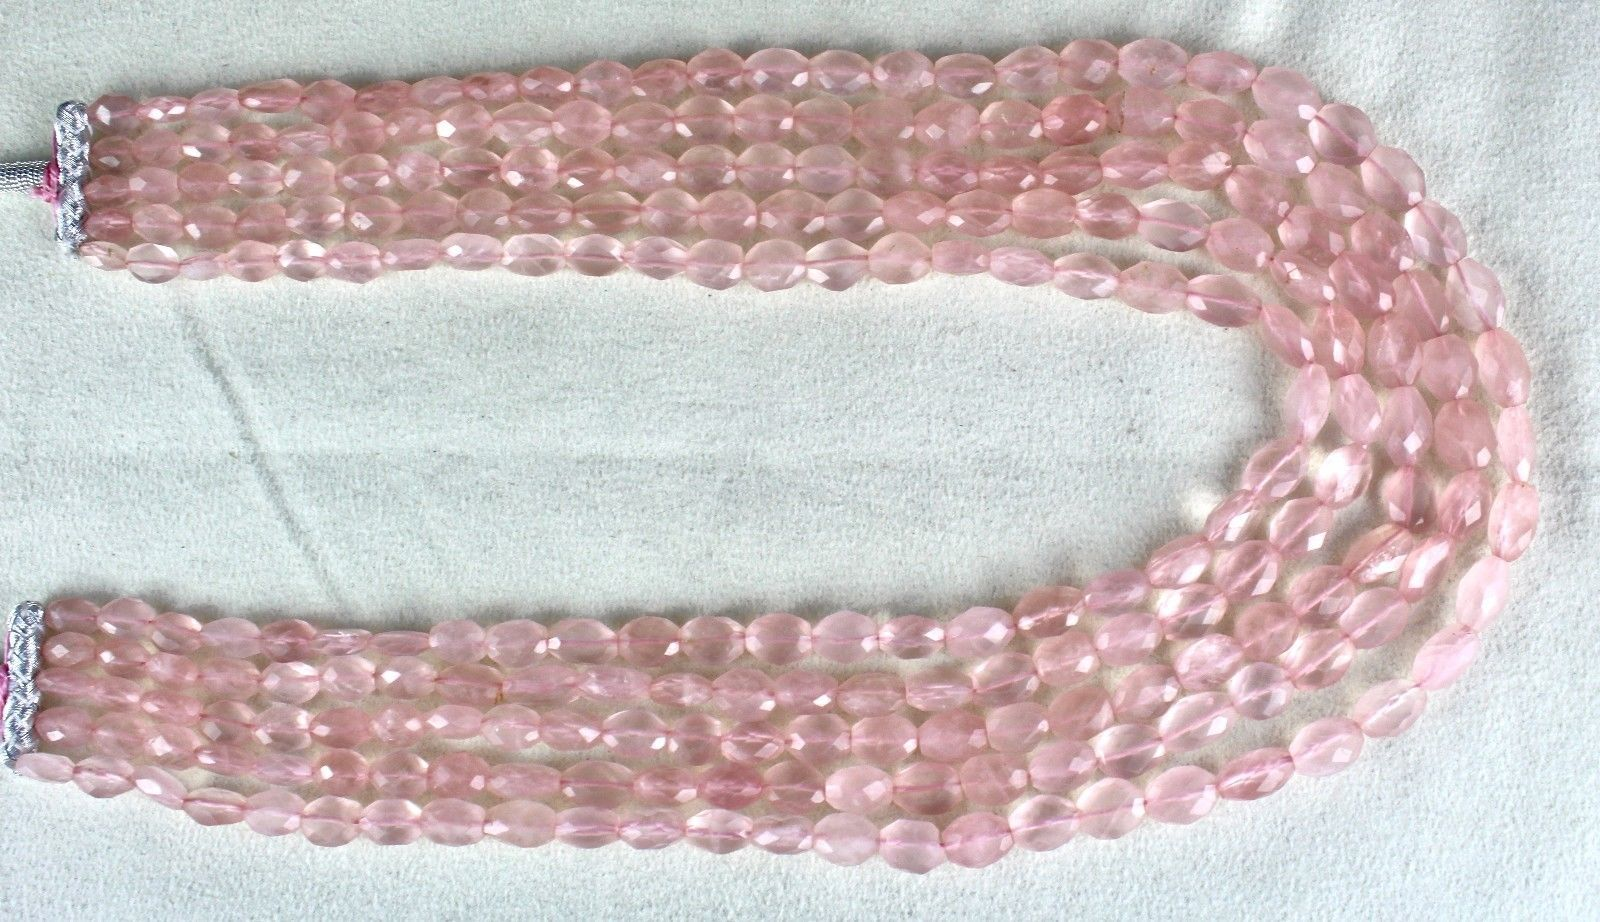 5 L 801 CTS NATURAL PINK ROSE QUARTZ FACETED CABOCHON BEADS NECKLACE FOR LADIES